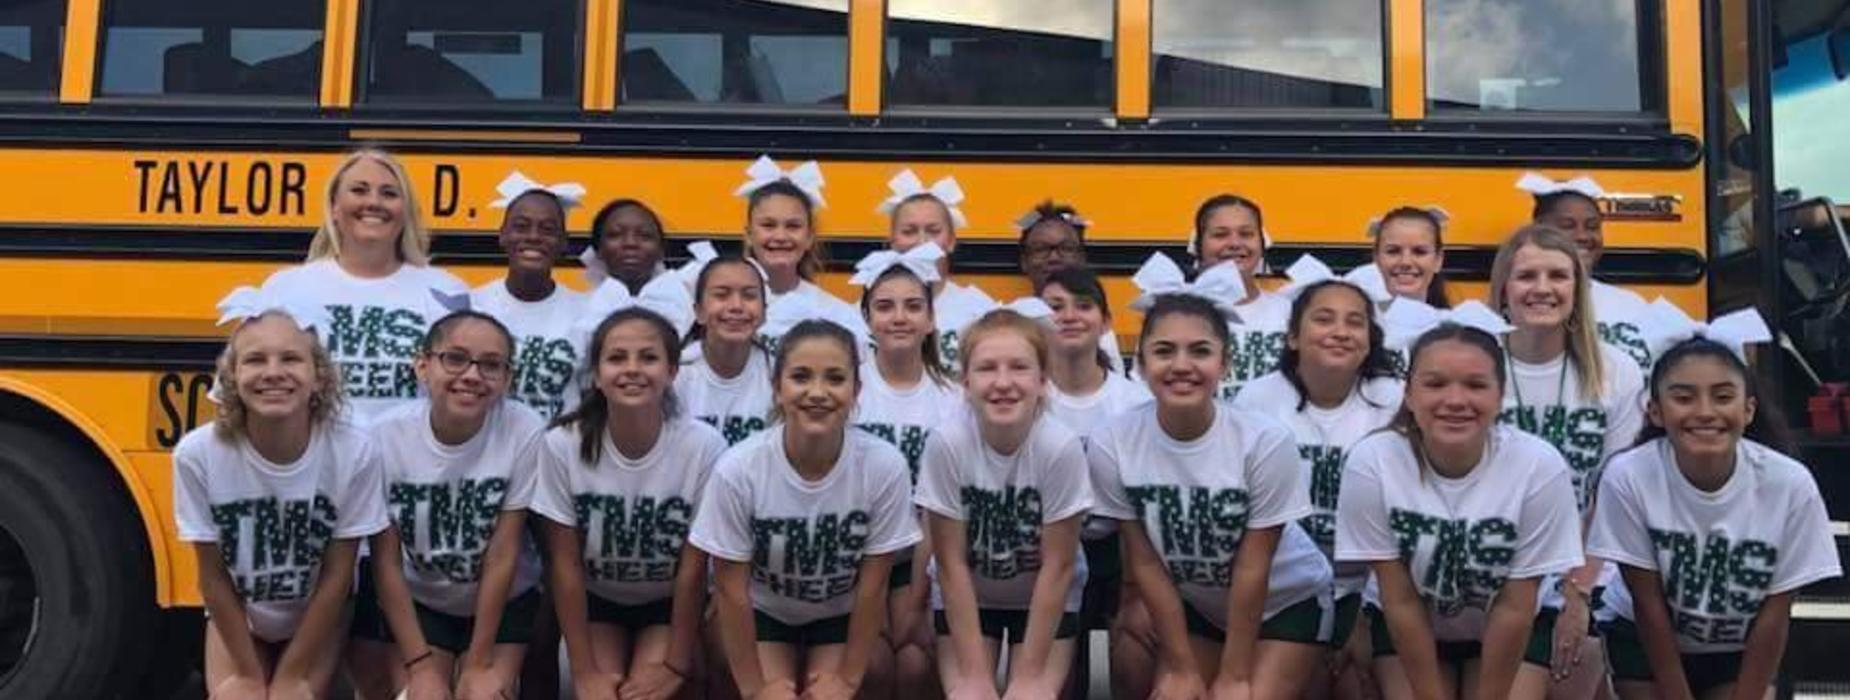 Cheerleader Camp 2018-2019